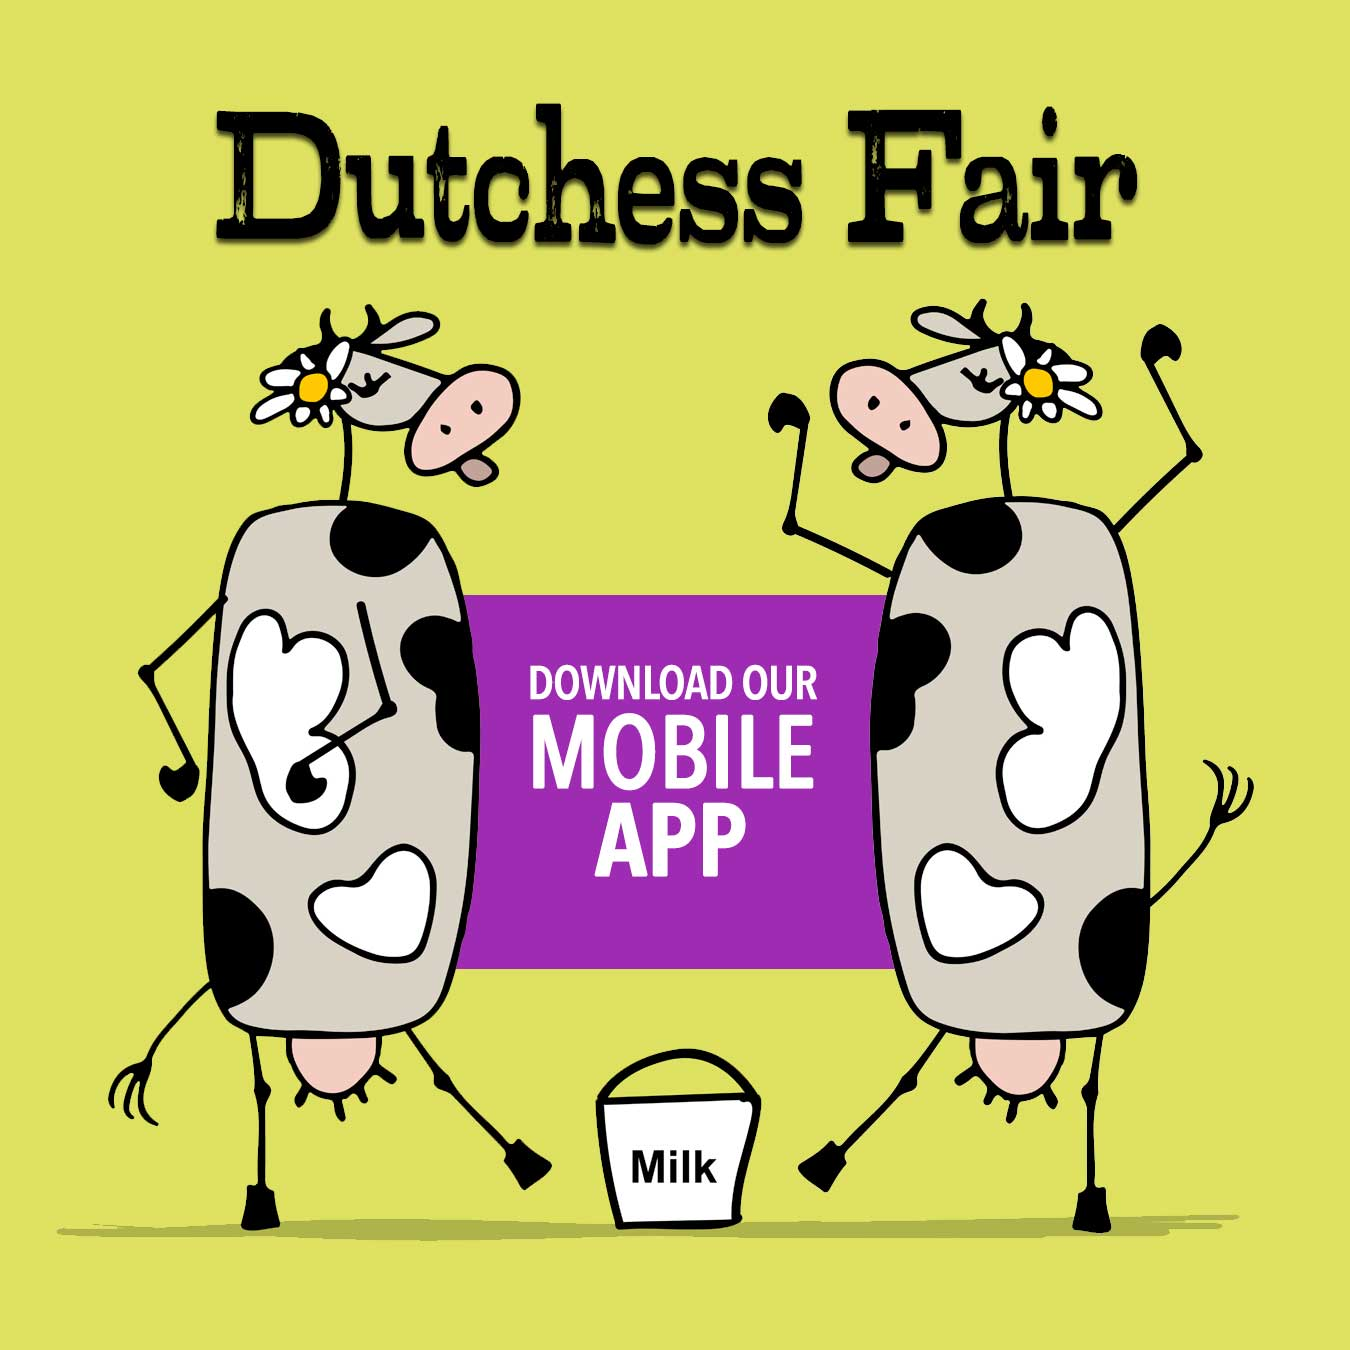 Dutchess Fair download our mobile app